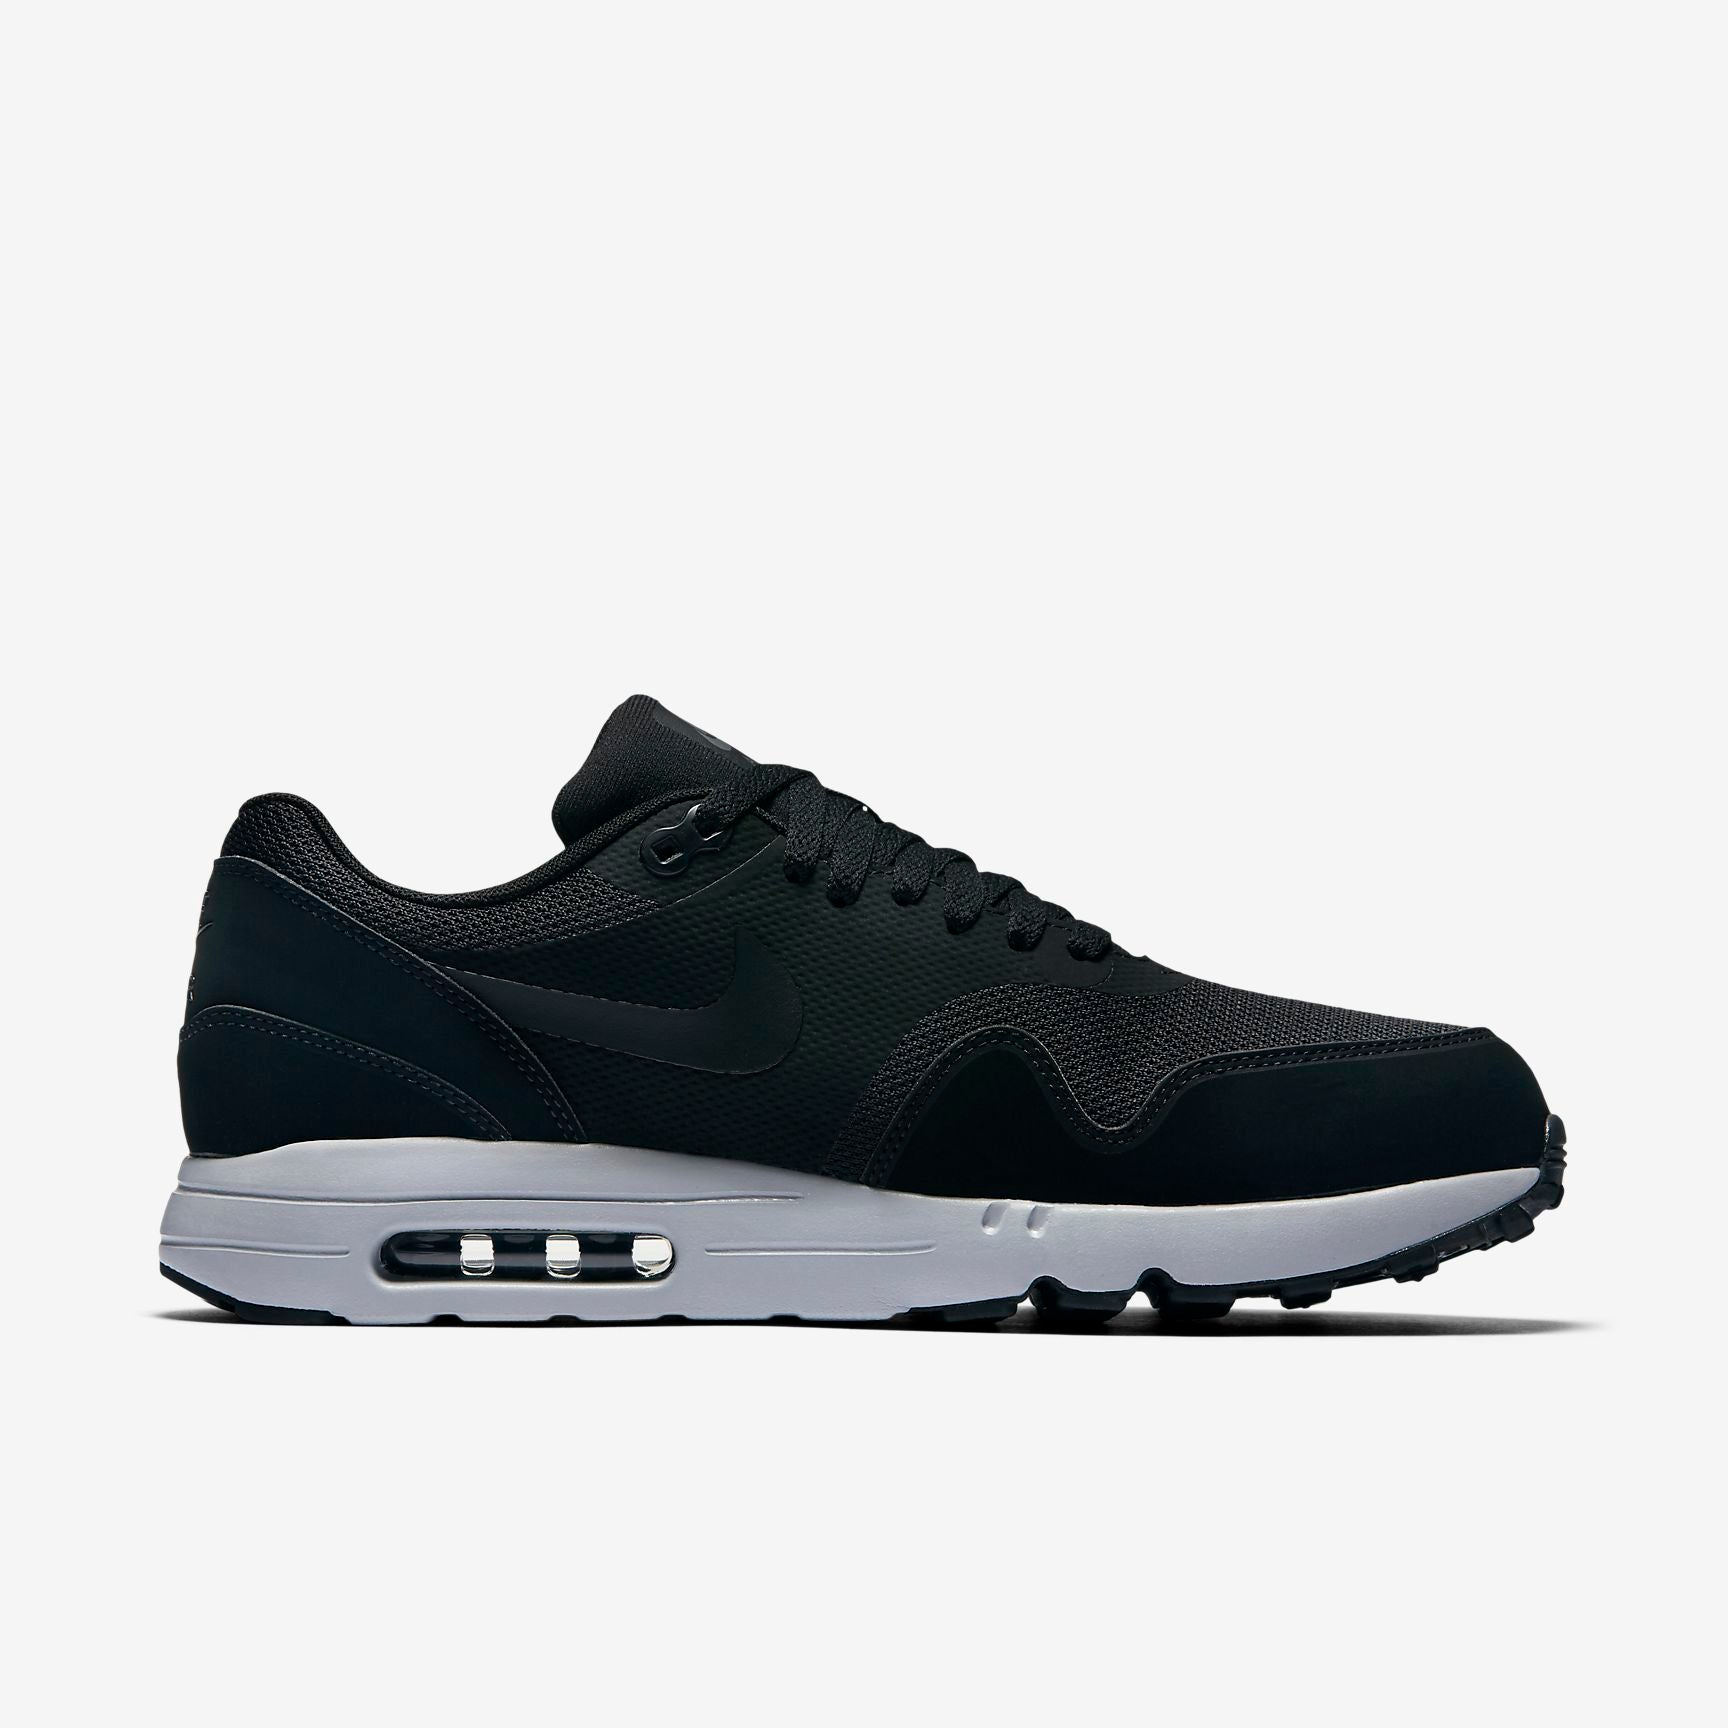 save off fc119 30065 AIR MAX 1 ULTRA 2.0 ESSENTIAL - BLACK   WOLF GREY   lapstoneandhammer.com